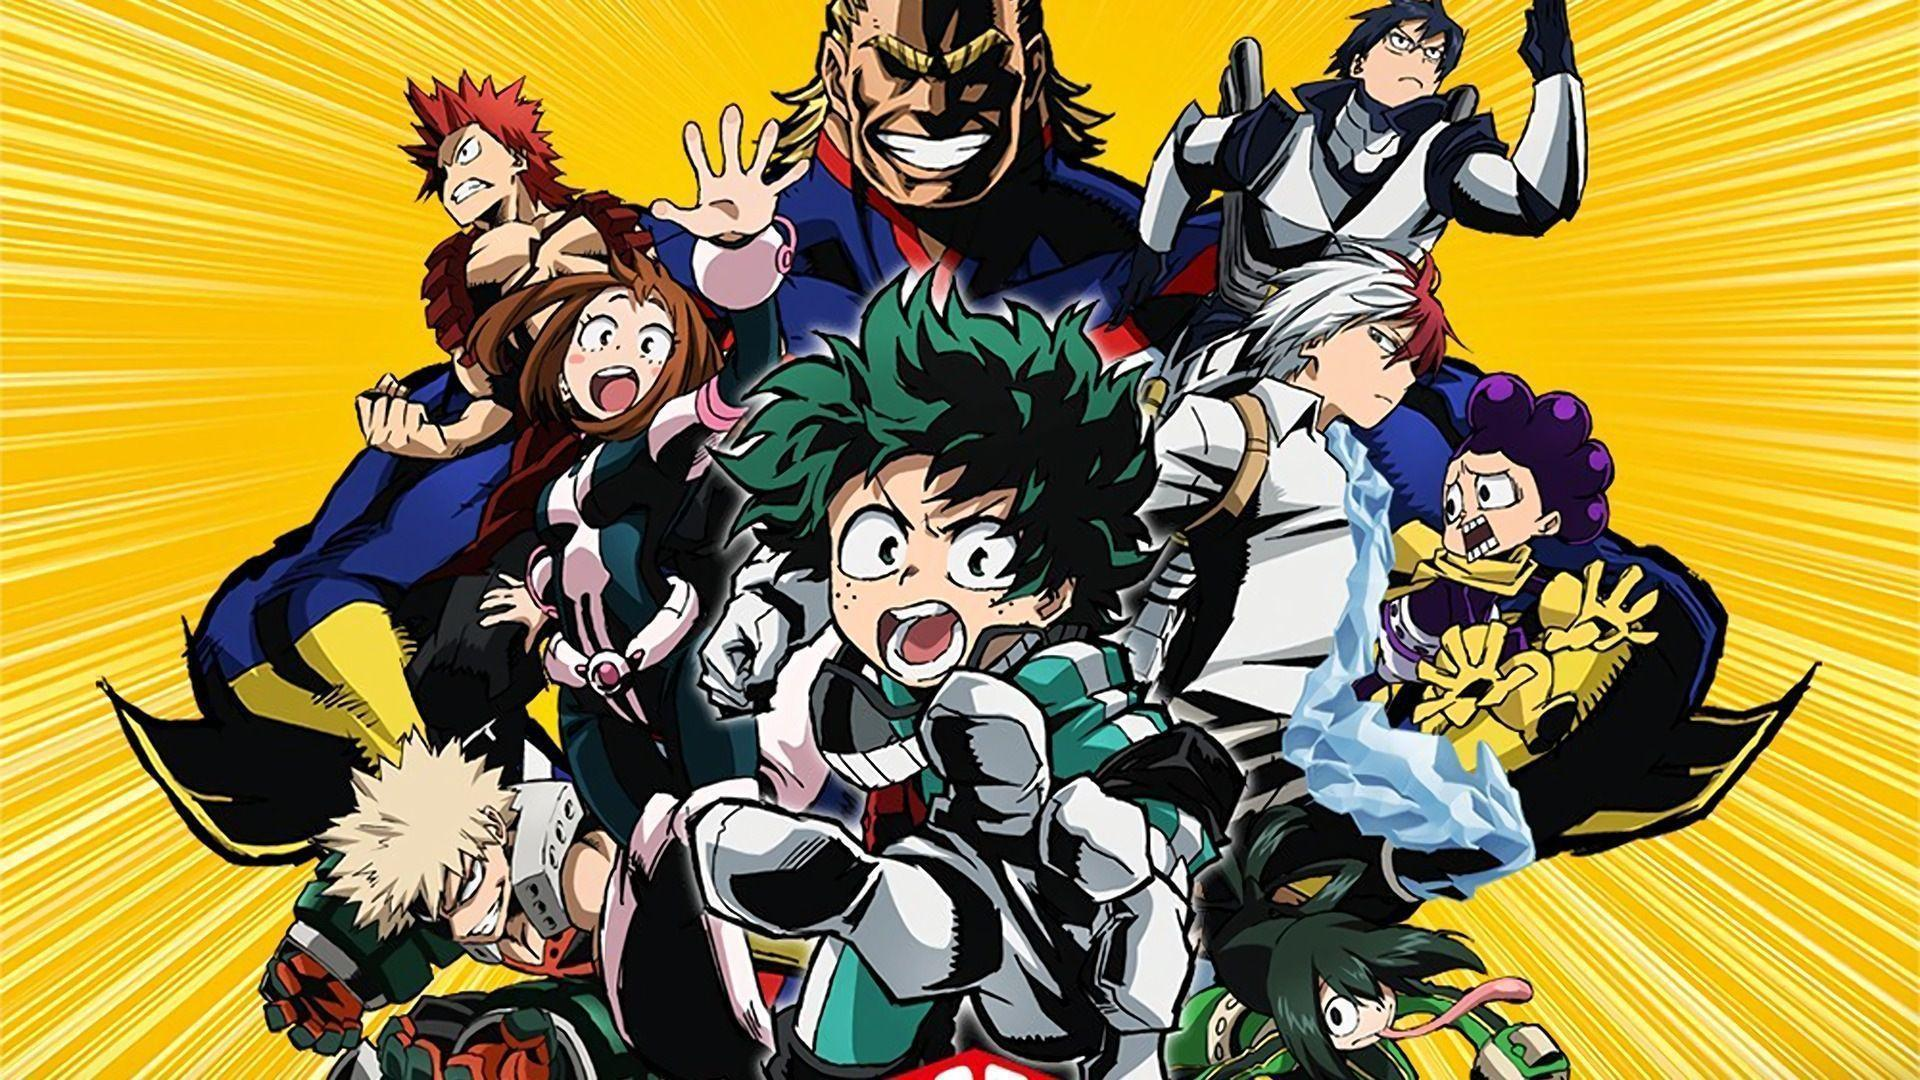 Shuffle all boku no hero academia pictures (randomized background images). My Hero Academia HD Wallpapers - Wallpaper Cave